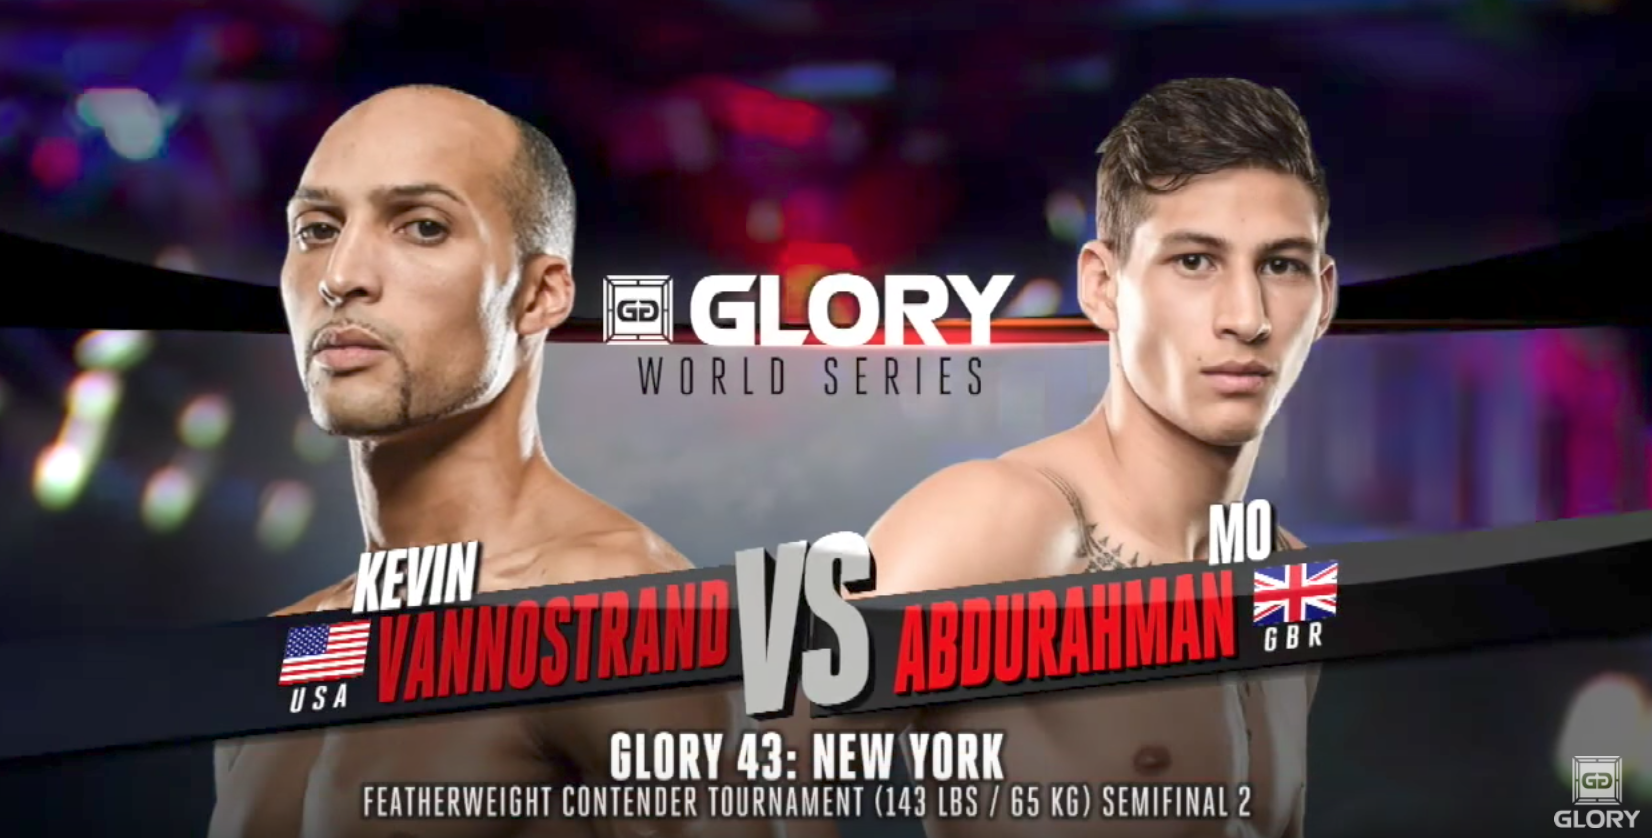 FULL MATCH - Kevin Vannostrand vs. Mo Abdurahman - Tournament Semi-finals: GLORY 43 New York